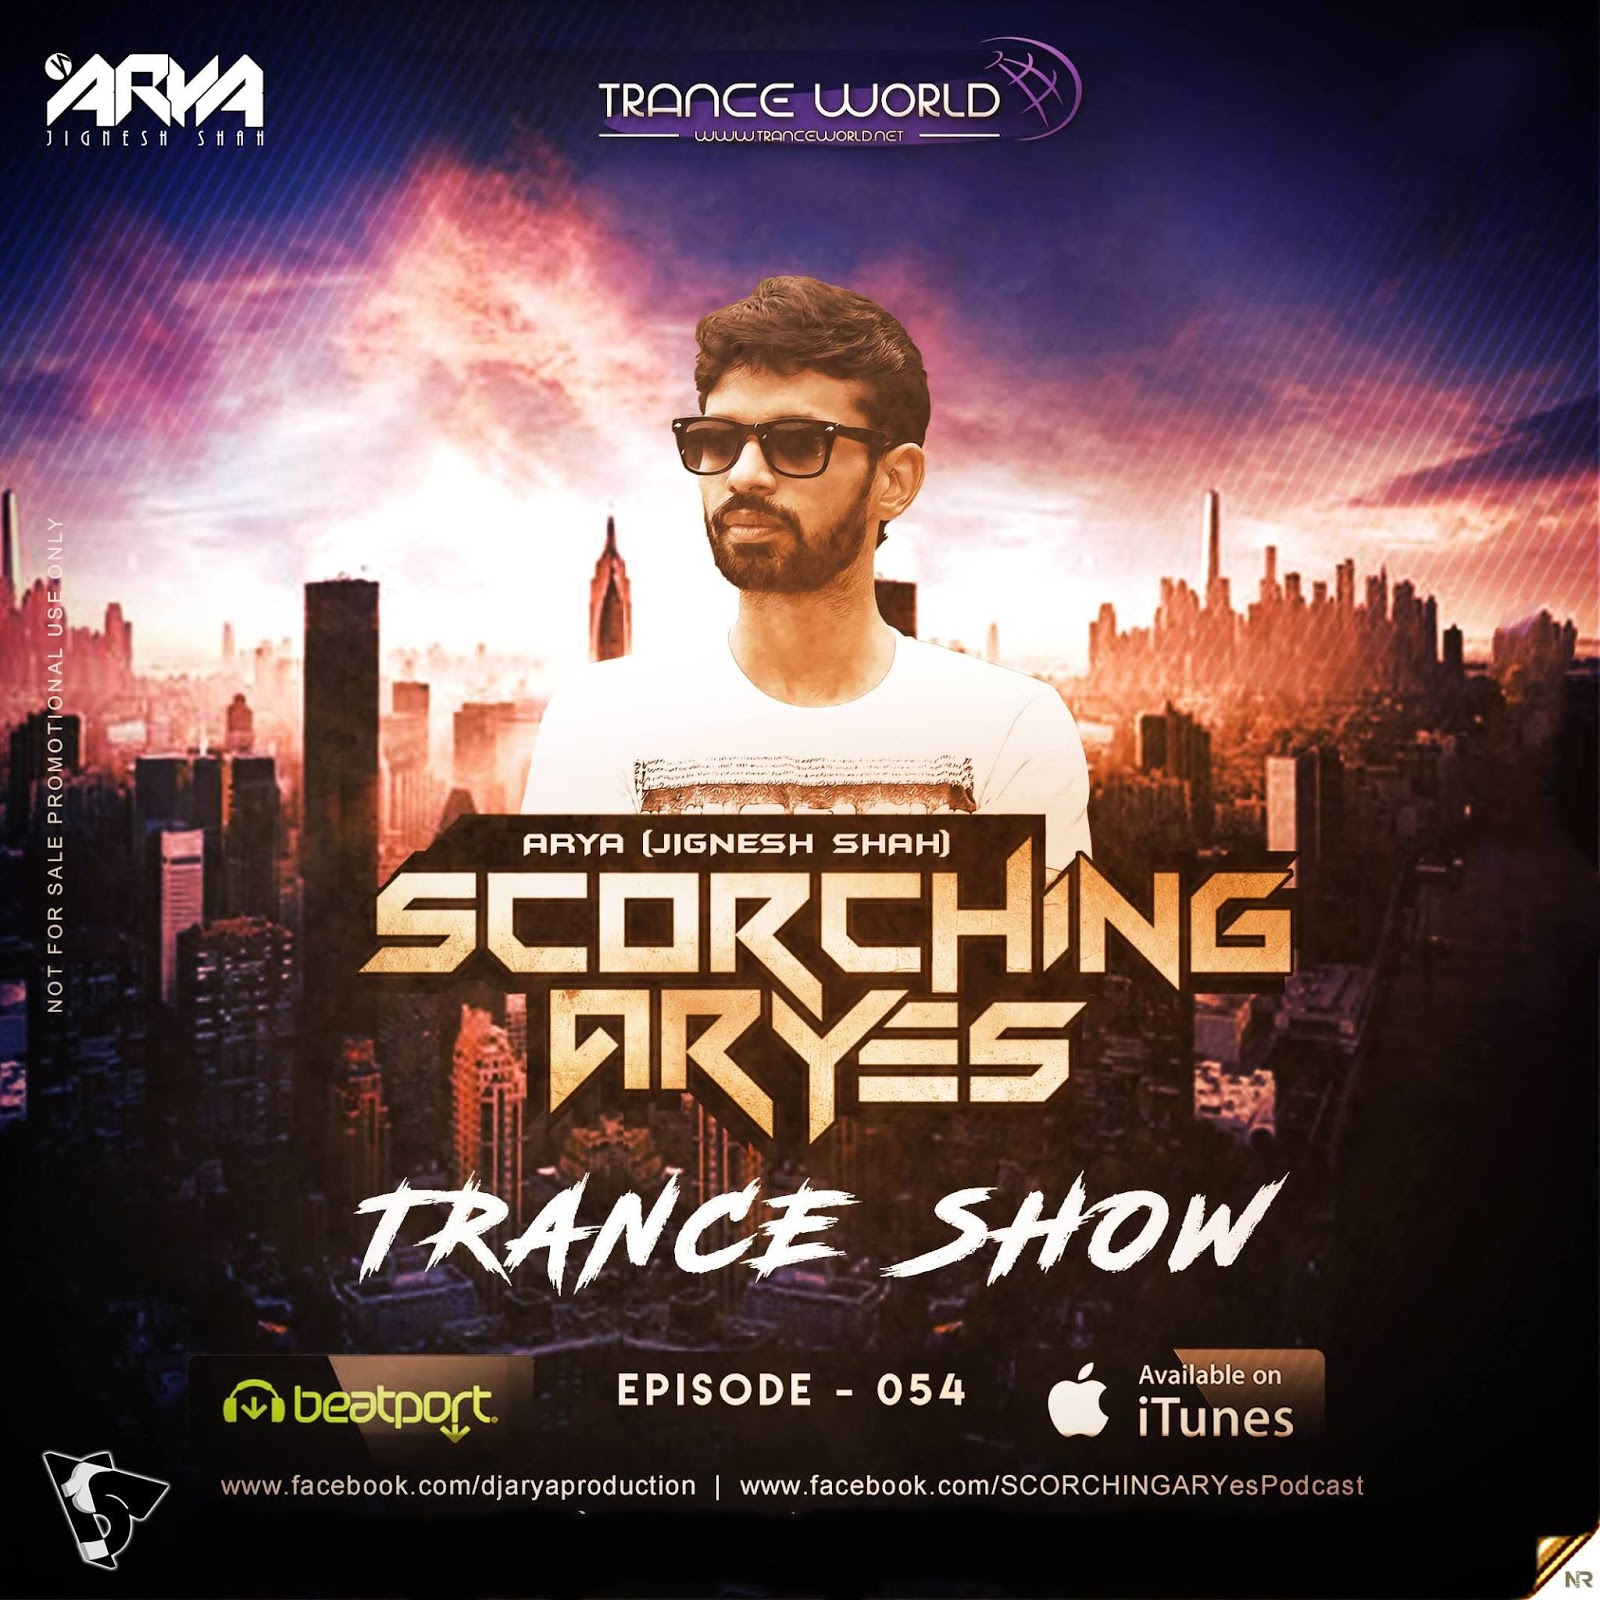 SCORCHING ARYes Episode 054 - ARYA (Jignesh Shah)